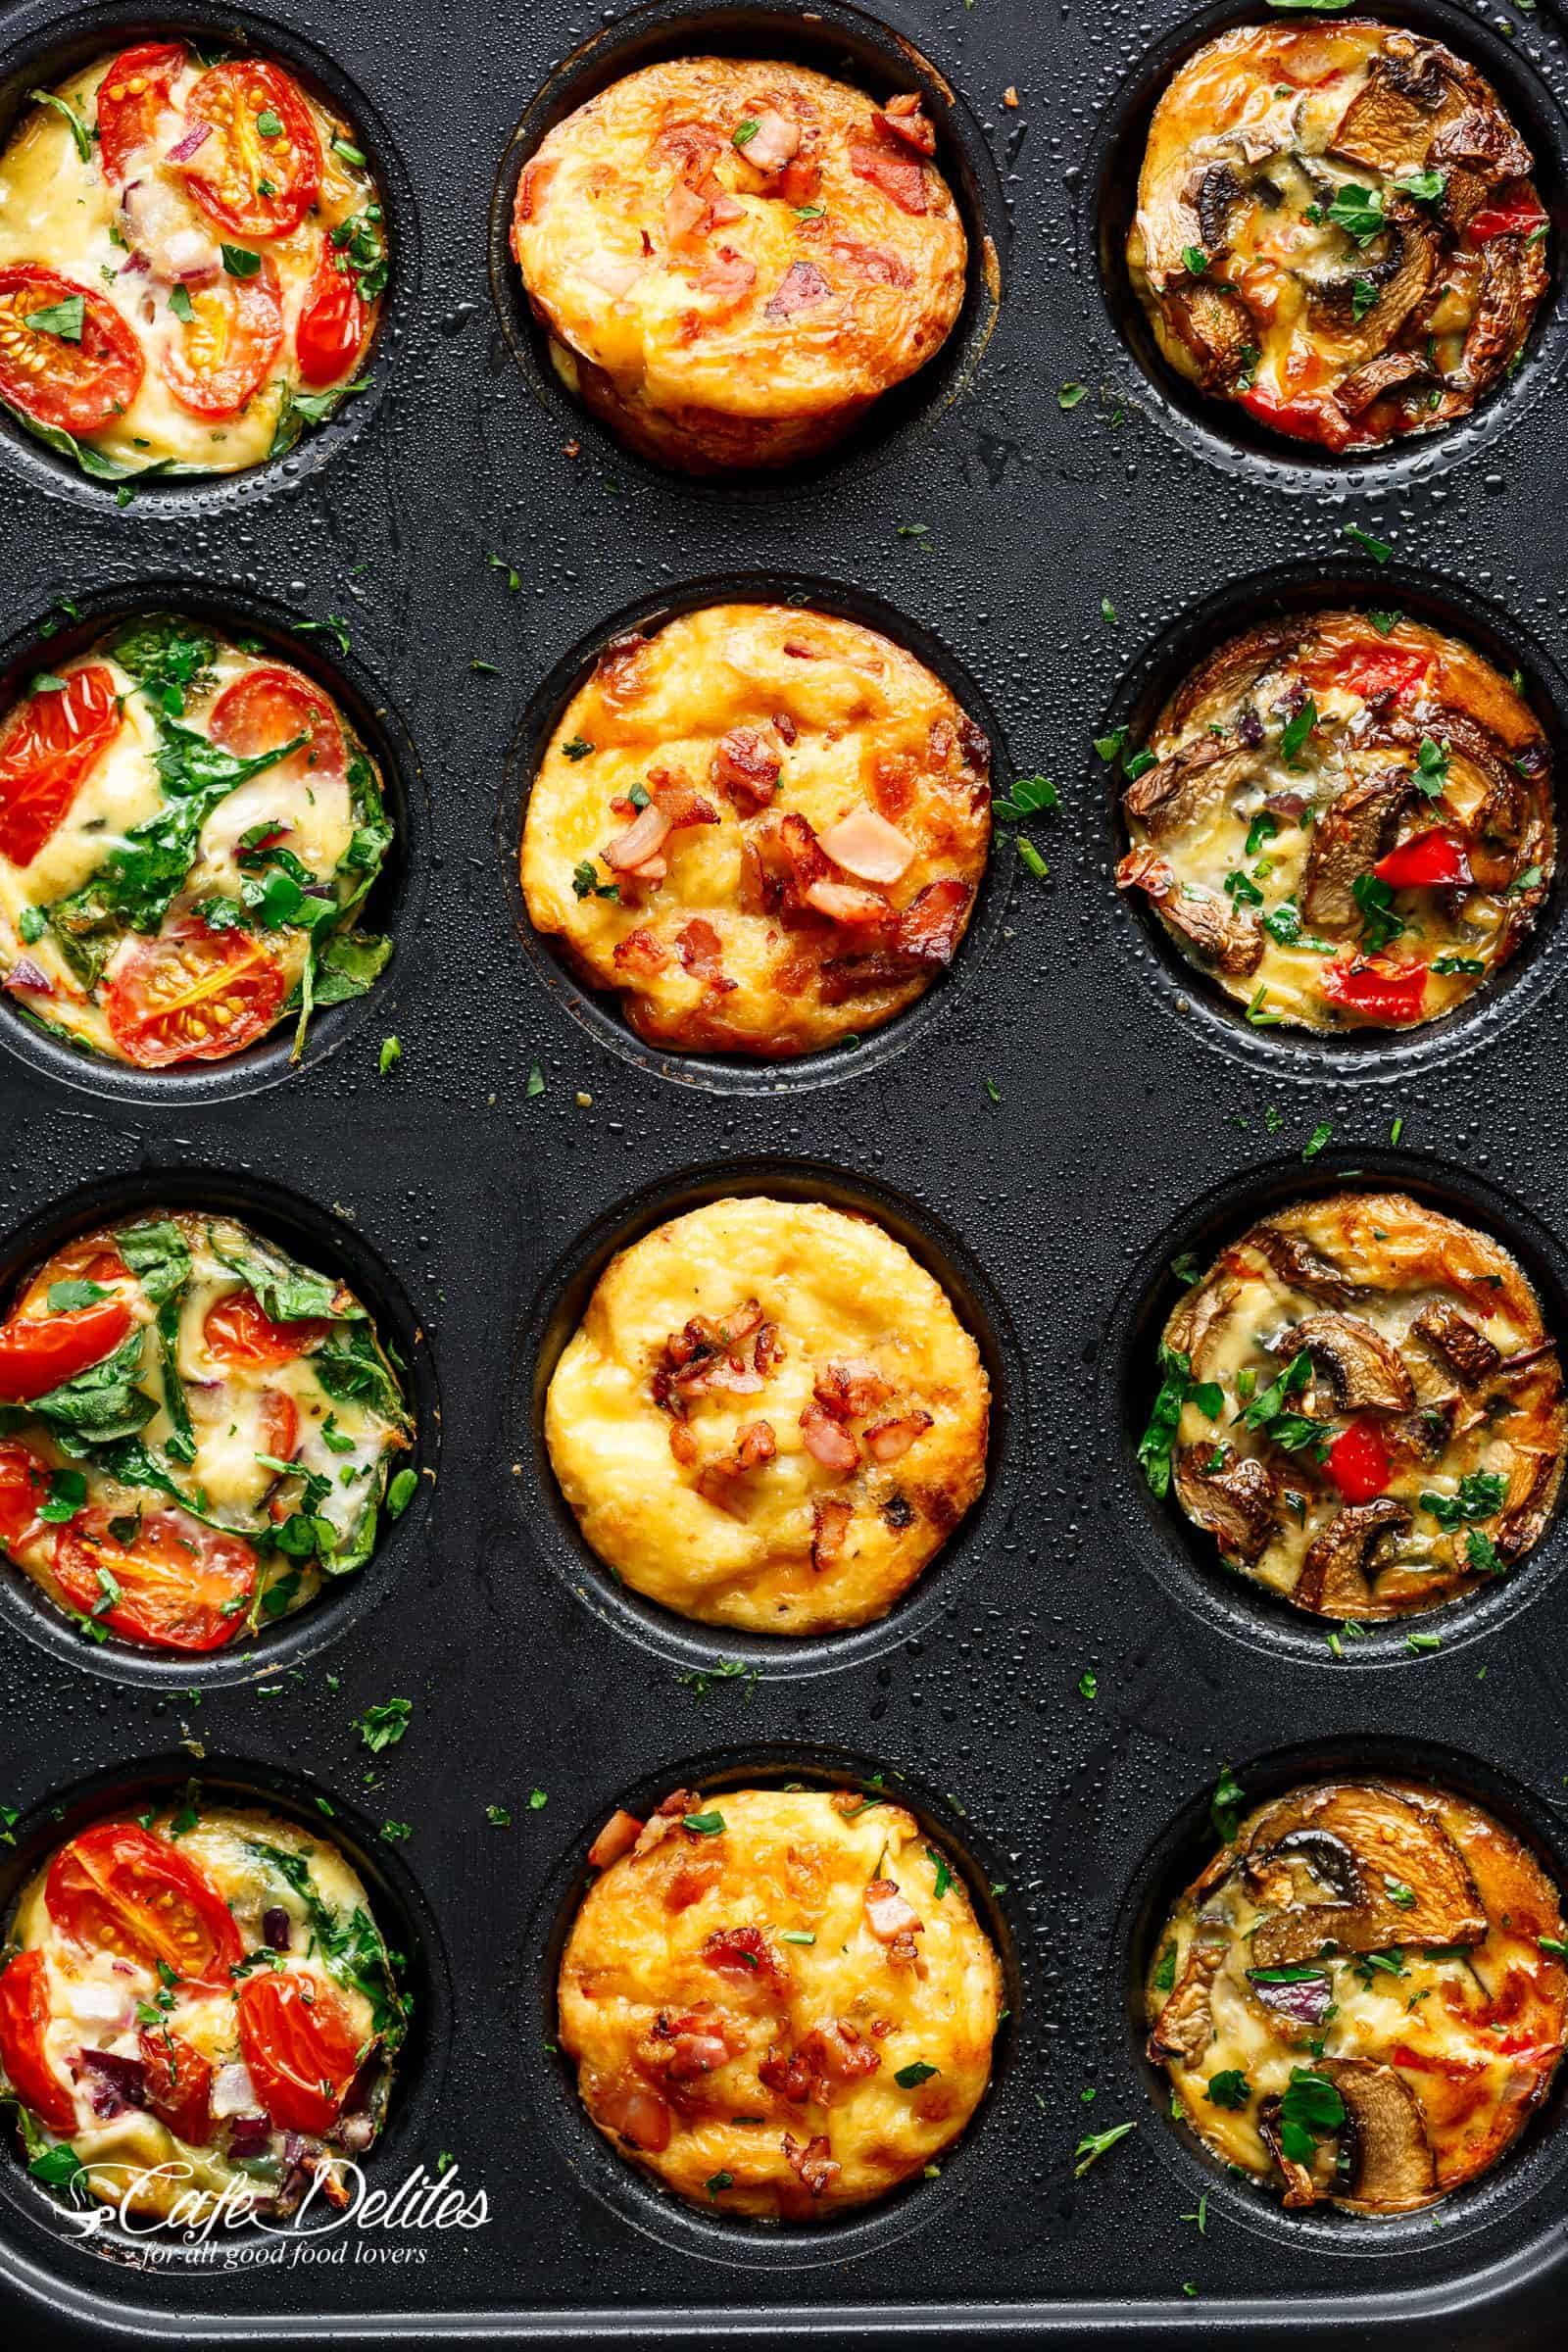 Breakfast Egg Muffins 3 Ways are low carb, filling and quick to grab while running out of the door! | cafedelites.com